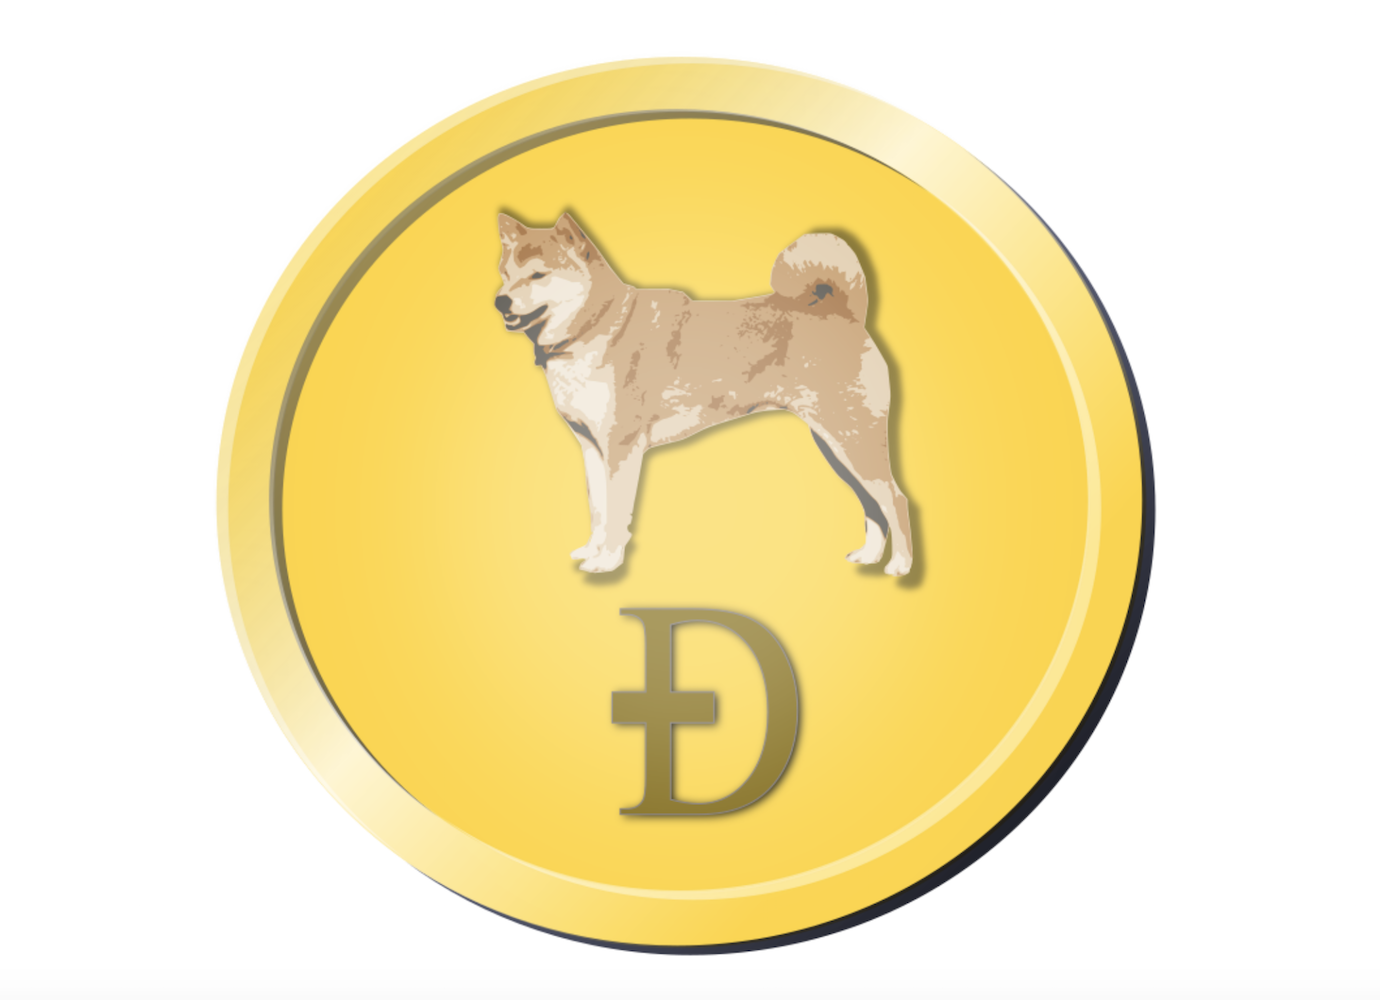 Latvian airline airBaltic now takes payments in Dogecoin